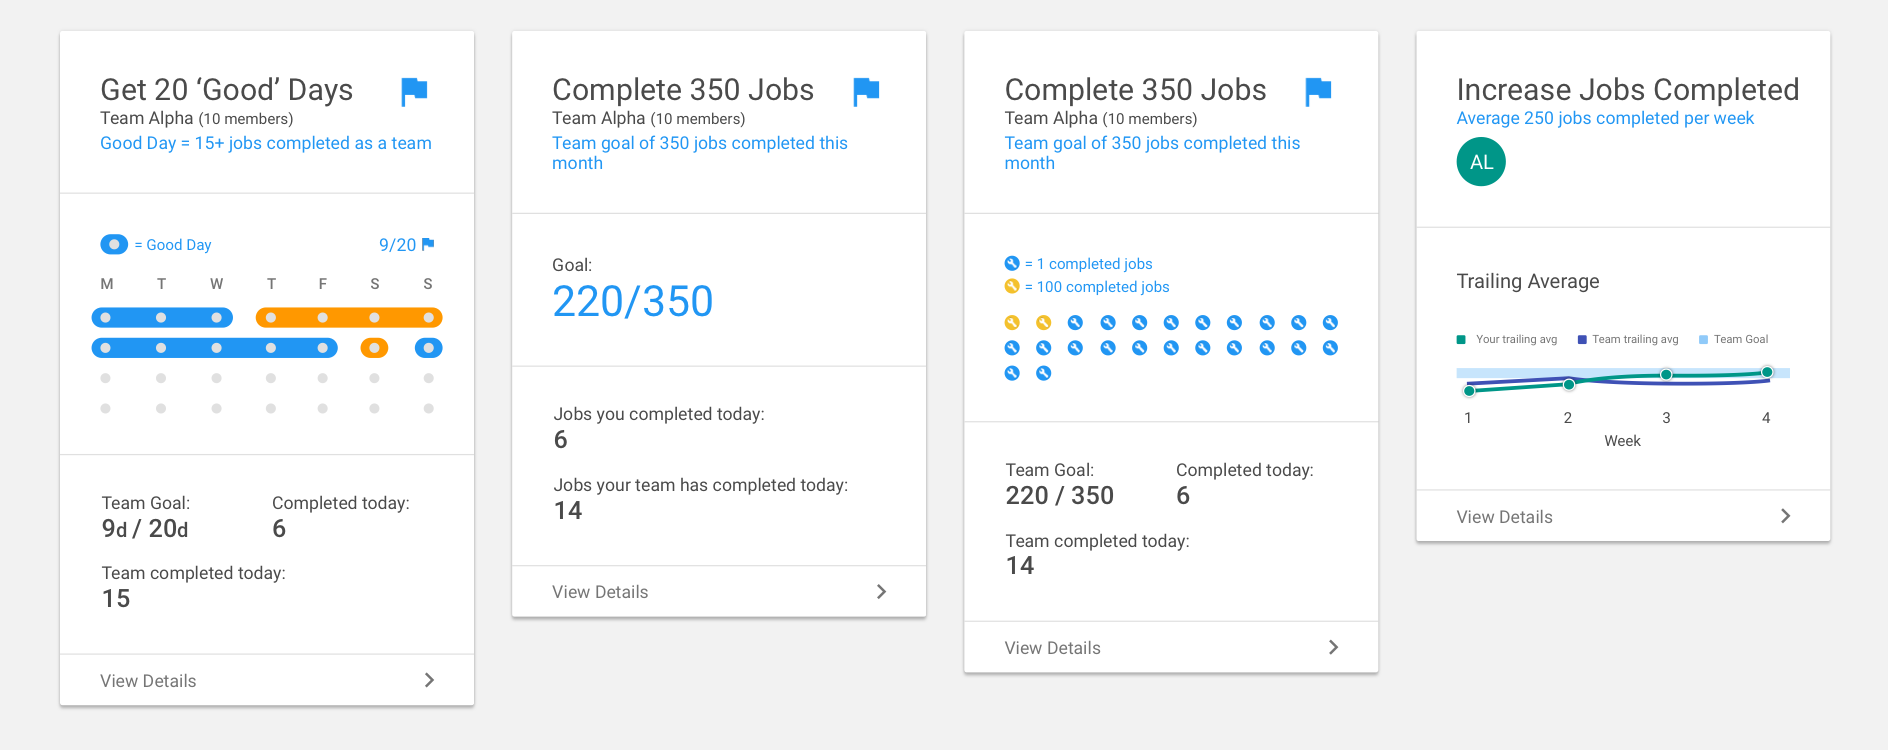 This is an example of different visual treatments and ideas of adding a 'Team Goals' layer to jobs completed.